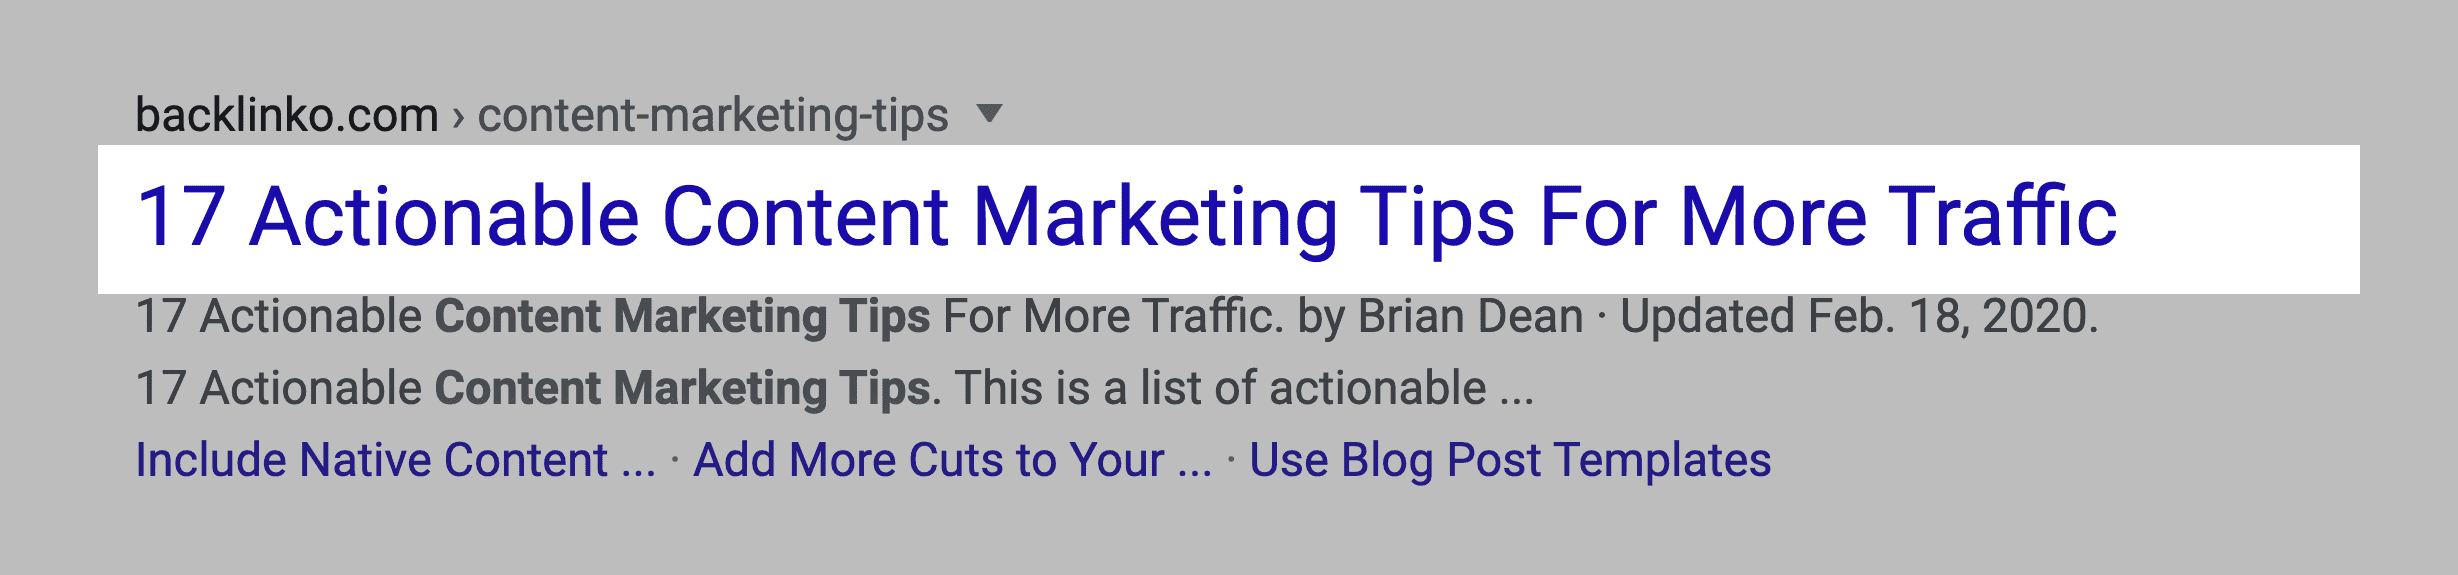 Content marketing tips post – Title tag in SERPs